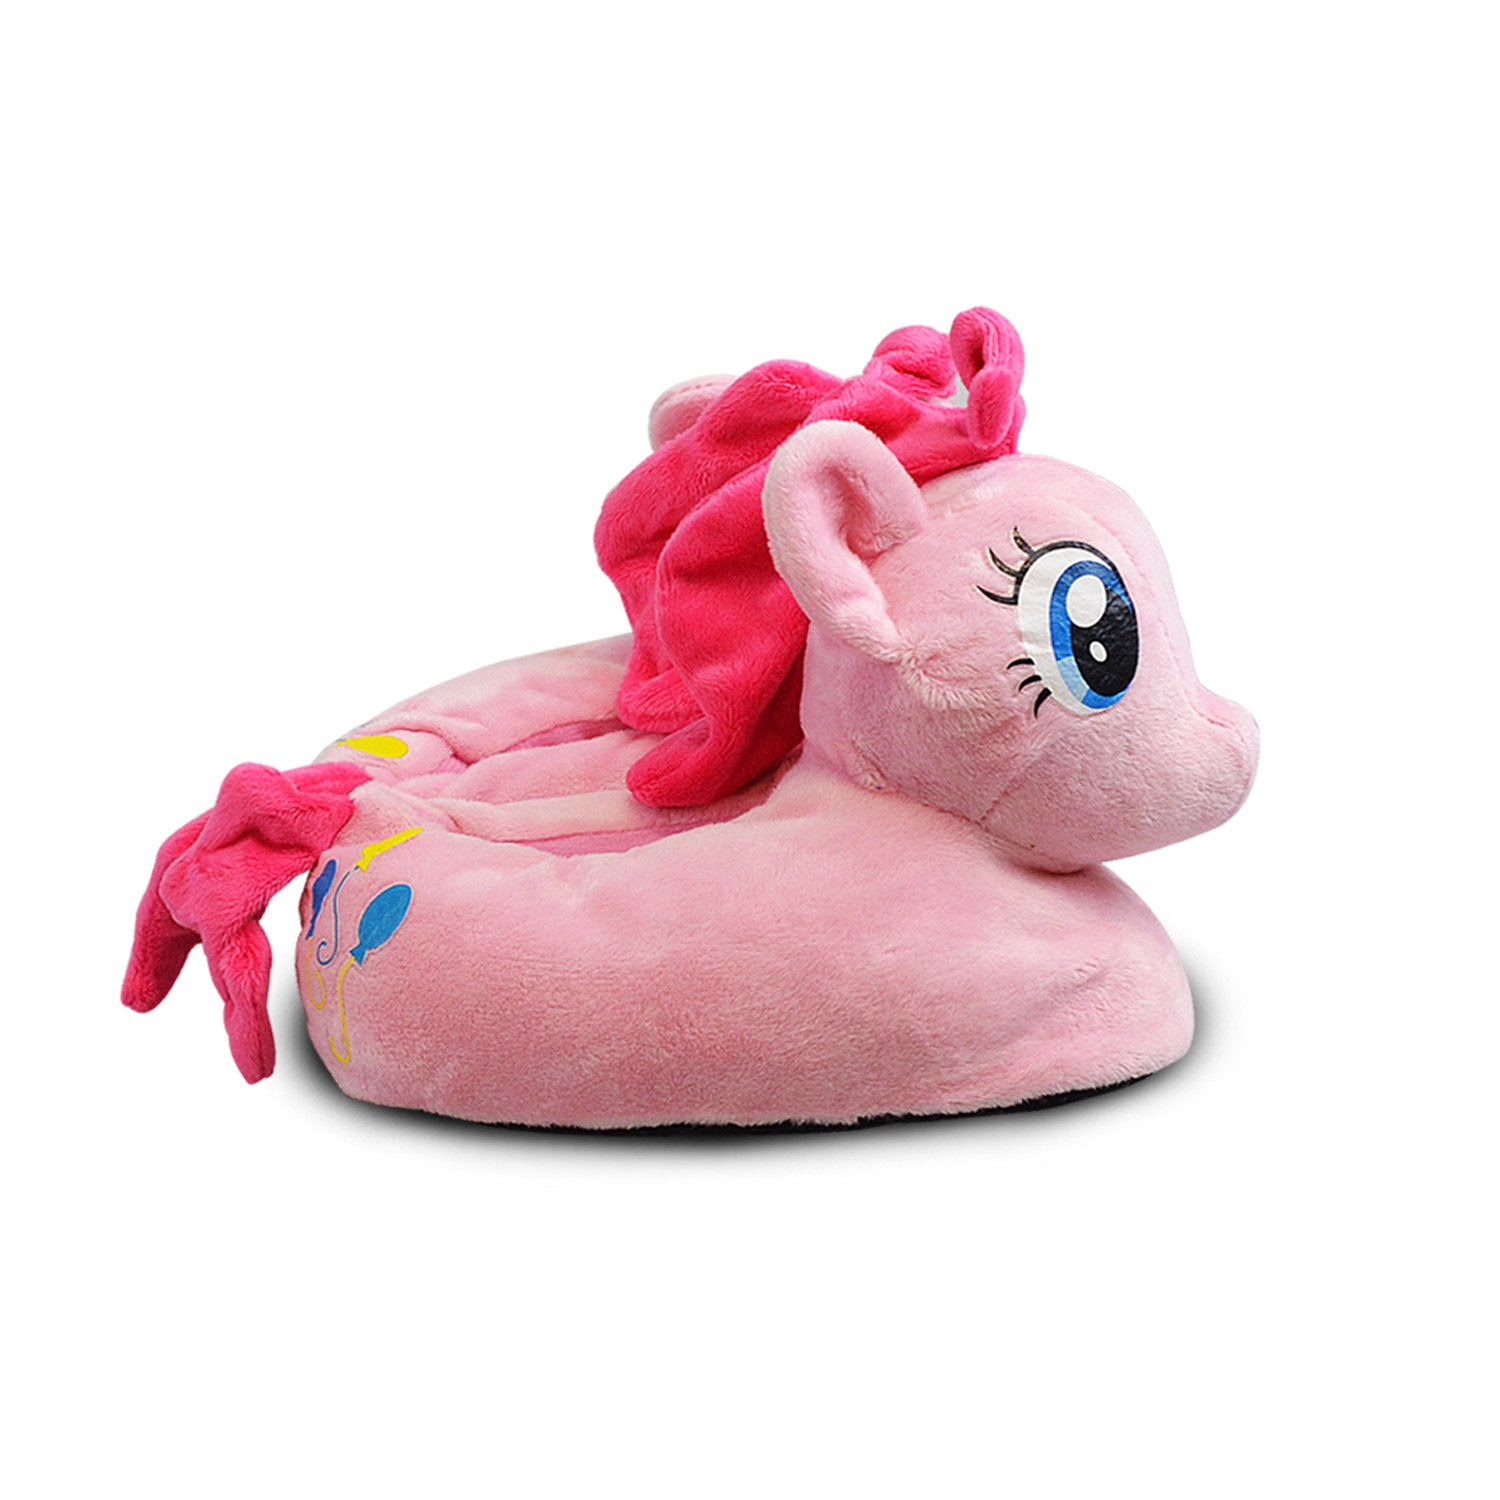 7c48298238cf My Little Pony Kids Plush Slippers Bedtime Toddler Soft Non Slip Rainbow  Dash (Pink